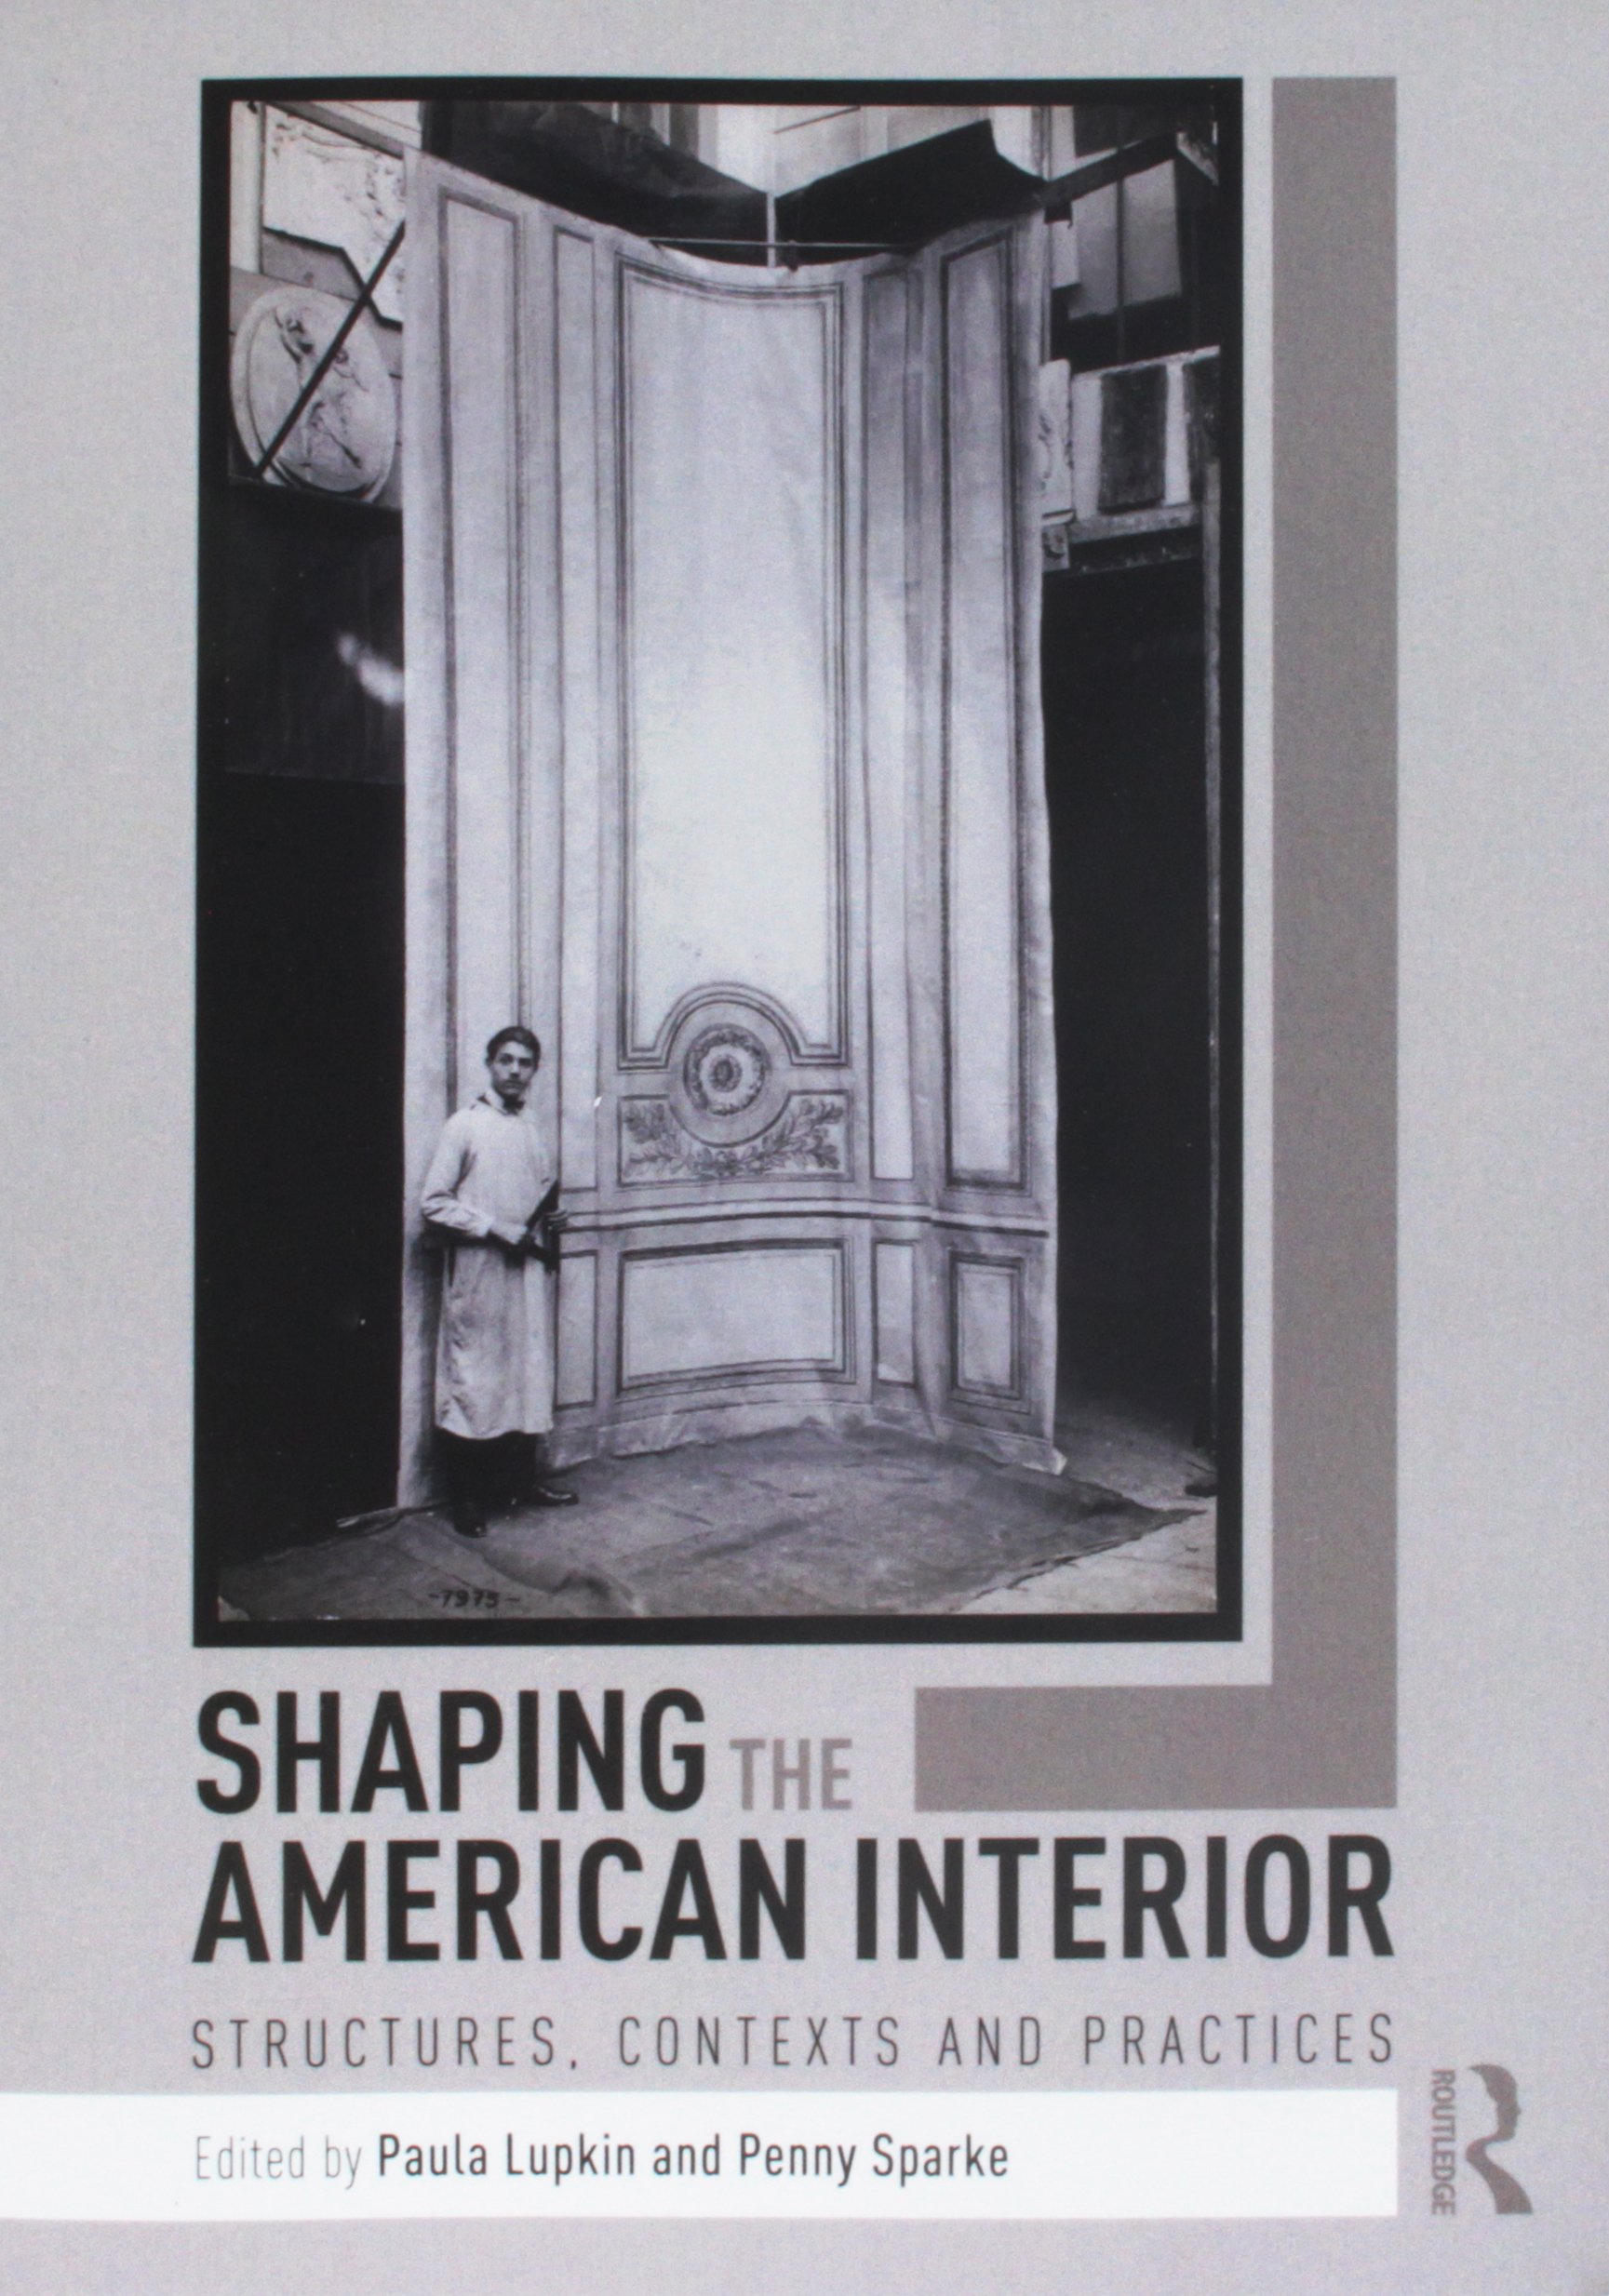 Shaping the American Interior: Structures, Contexts and Practices